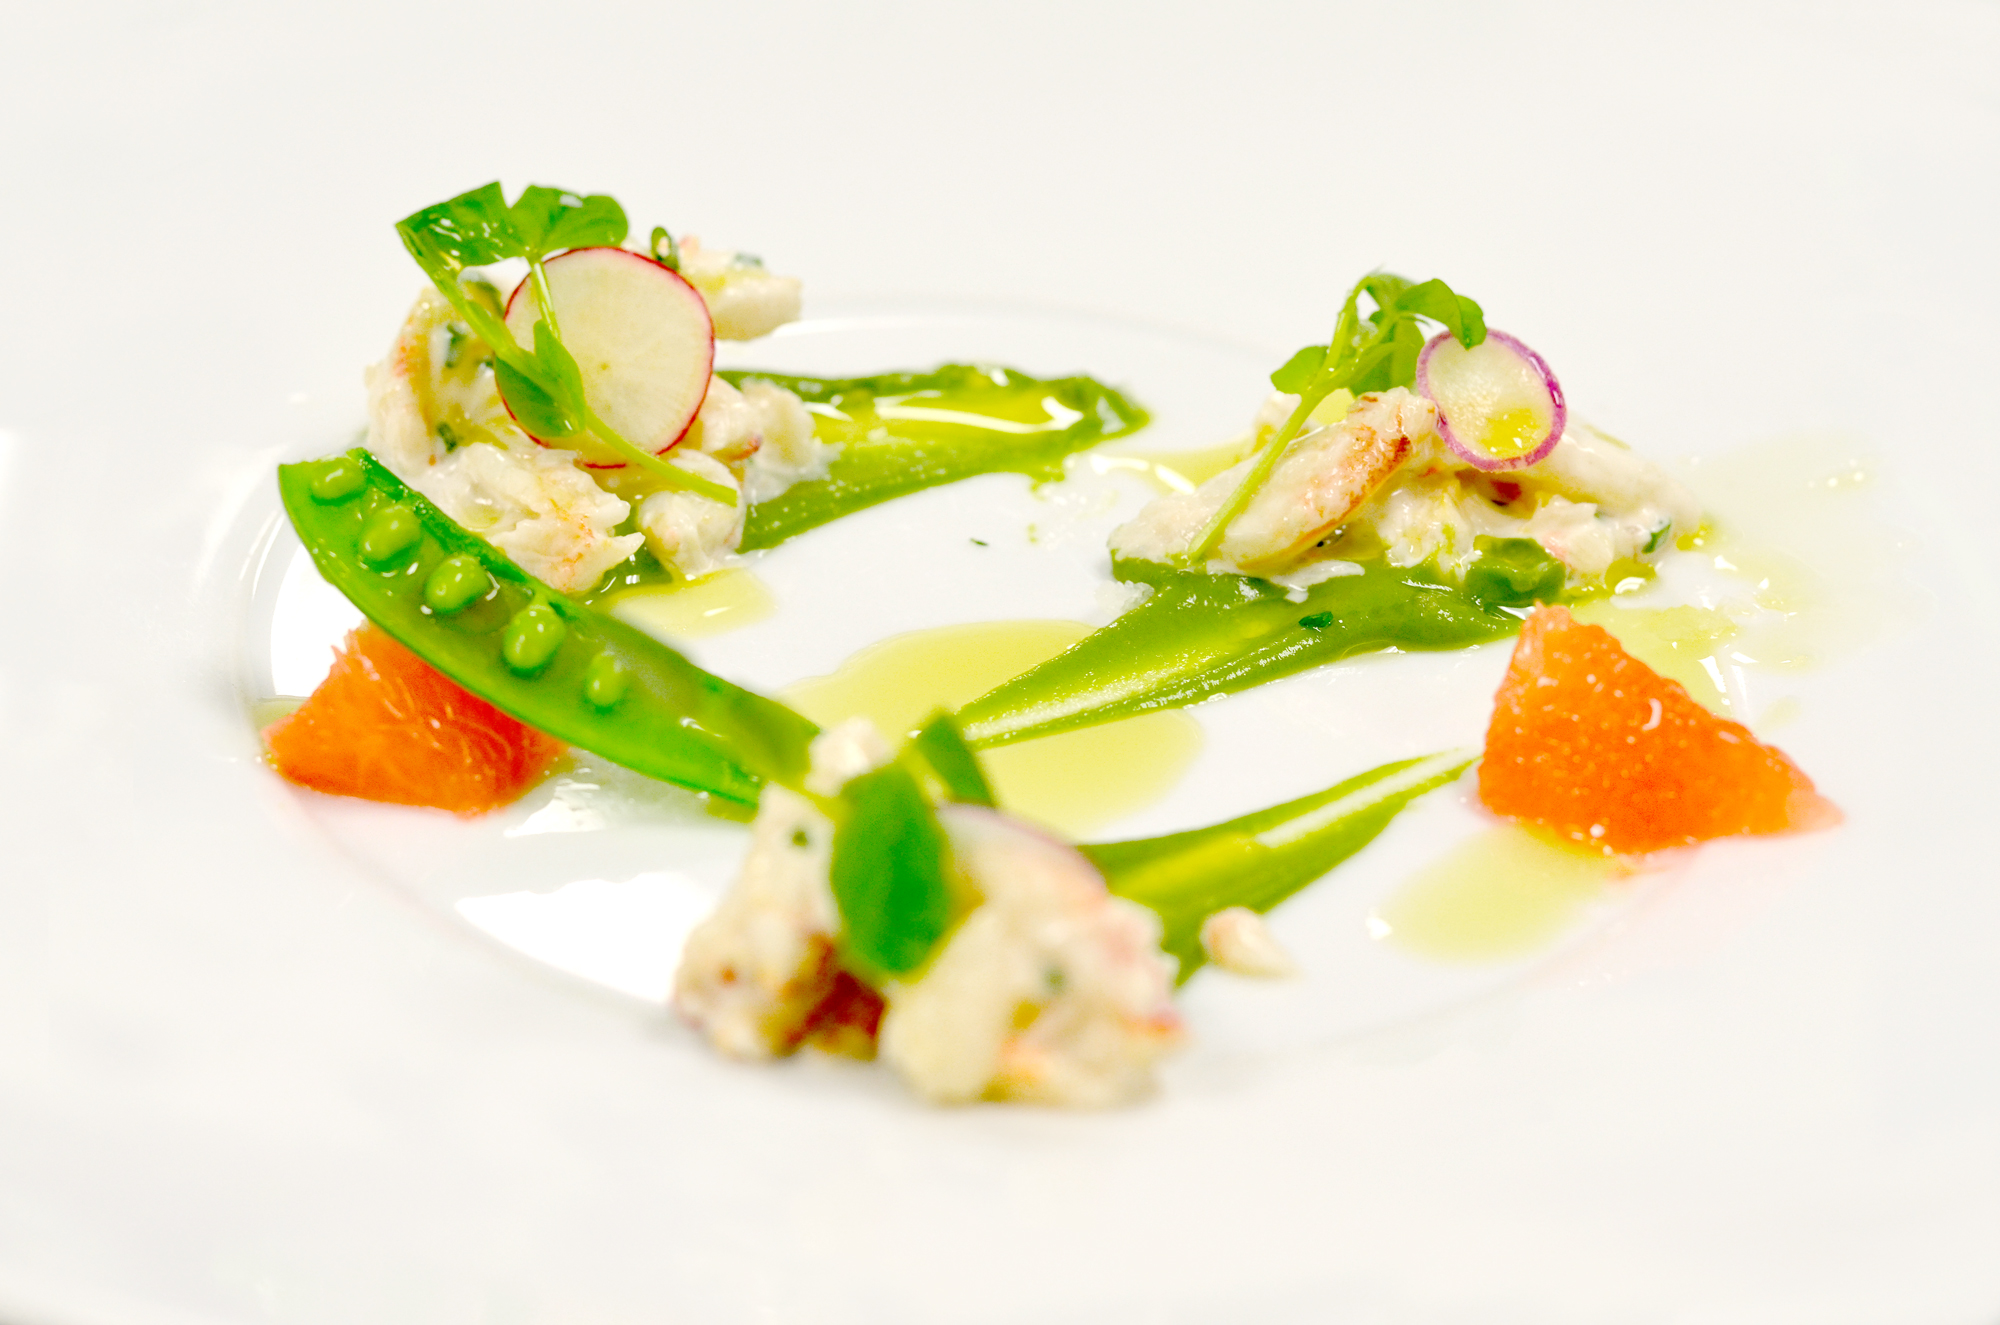 Be Healthful Retreat & Four Seasons Chicago - Natural Recipes for exotic Peeky Toe Crab Salad